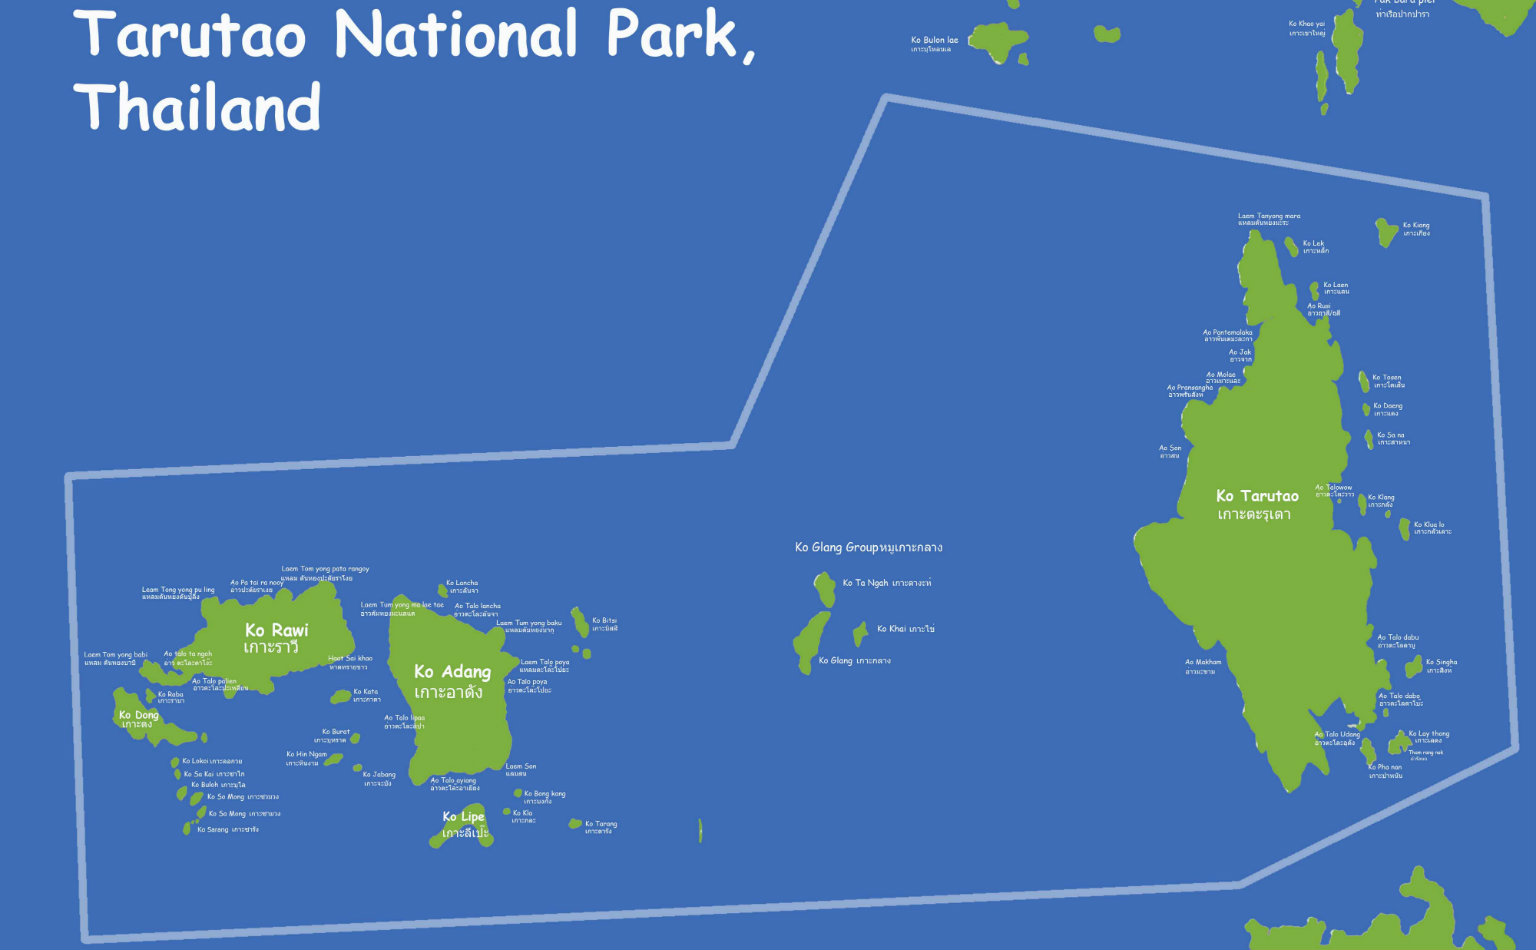 Tarutao National Park map